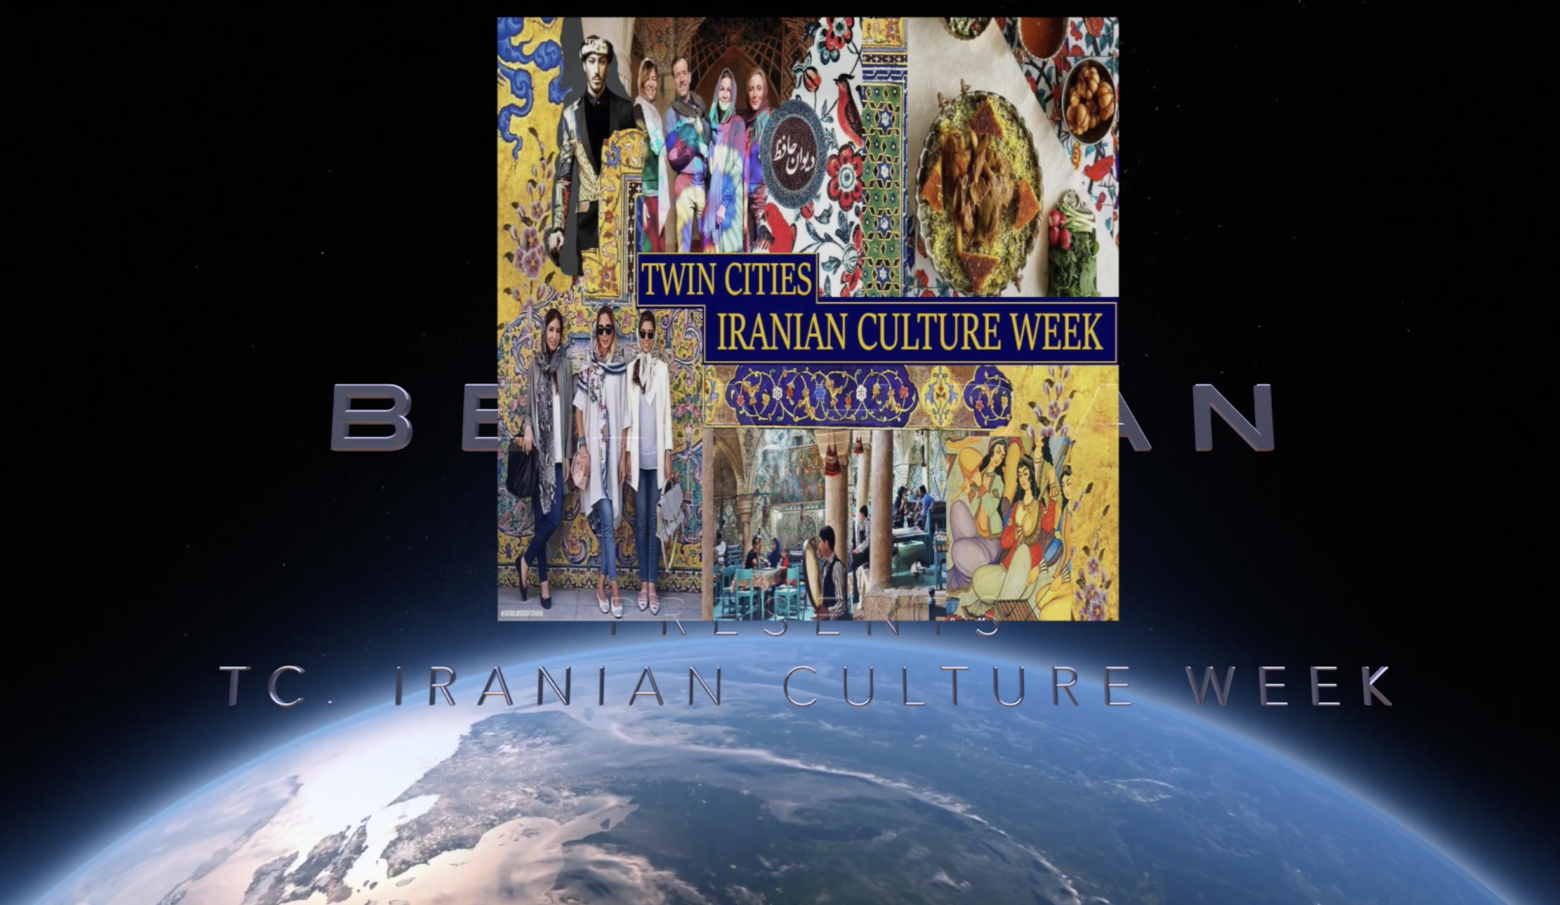 Twin Cities, Iranian Culture Week, Music, Arts, and Friends